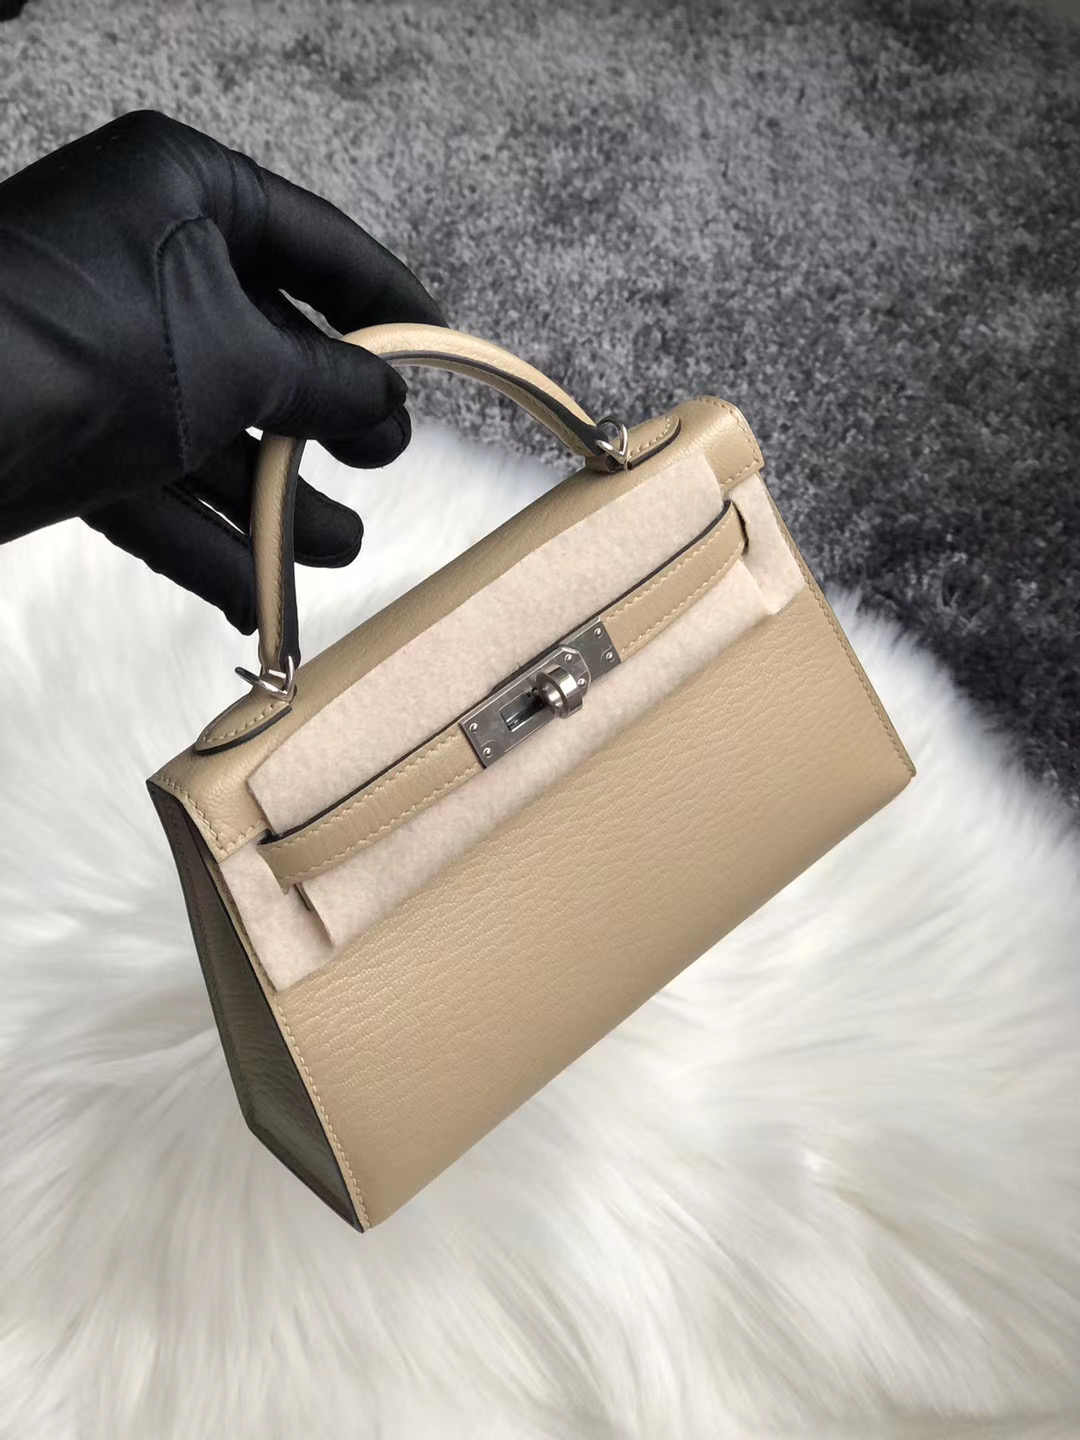 臺灣新北市永和區 Hermes Kelly Mini II Handbag Chevre S2 Trench 風衣灰